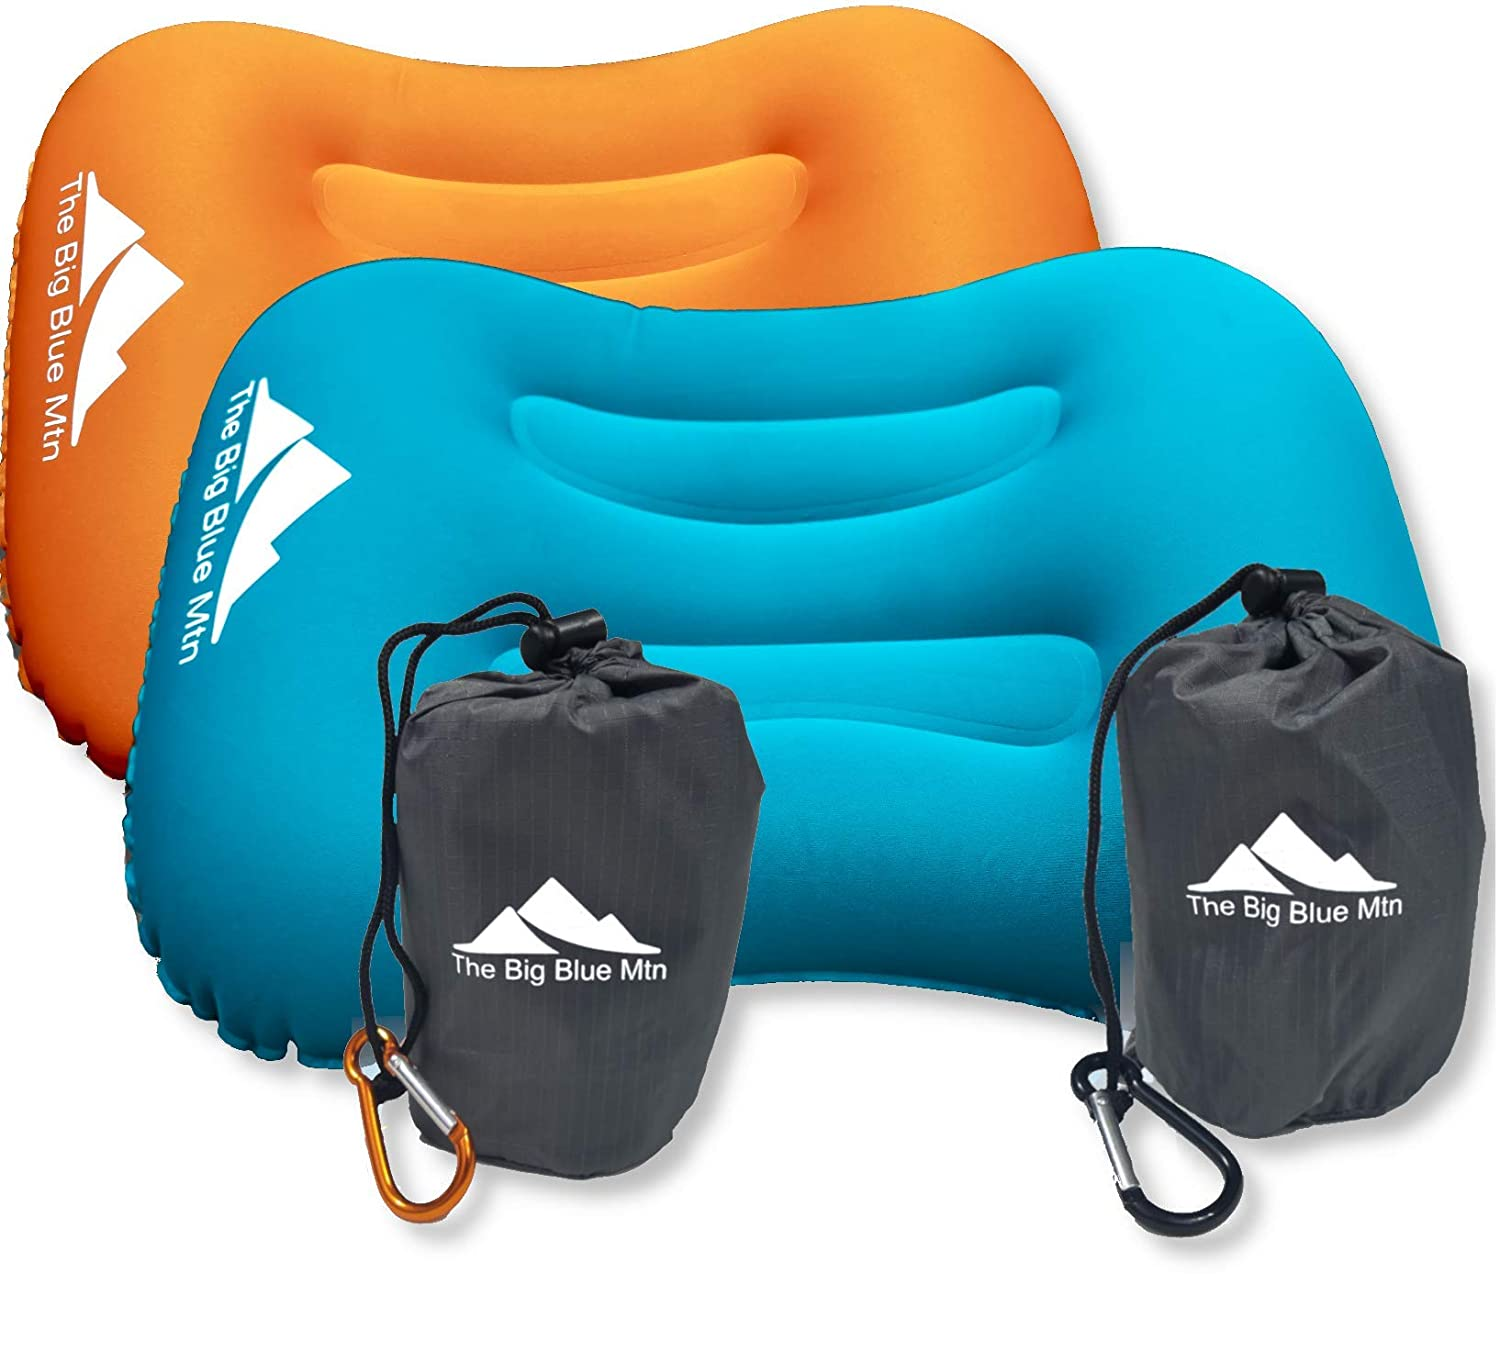 The Big Blue Mtn Ultralight Backpacking Inflatable Camping Pillow